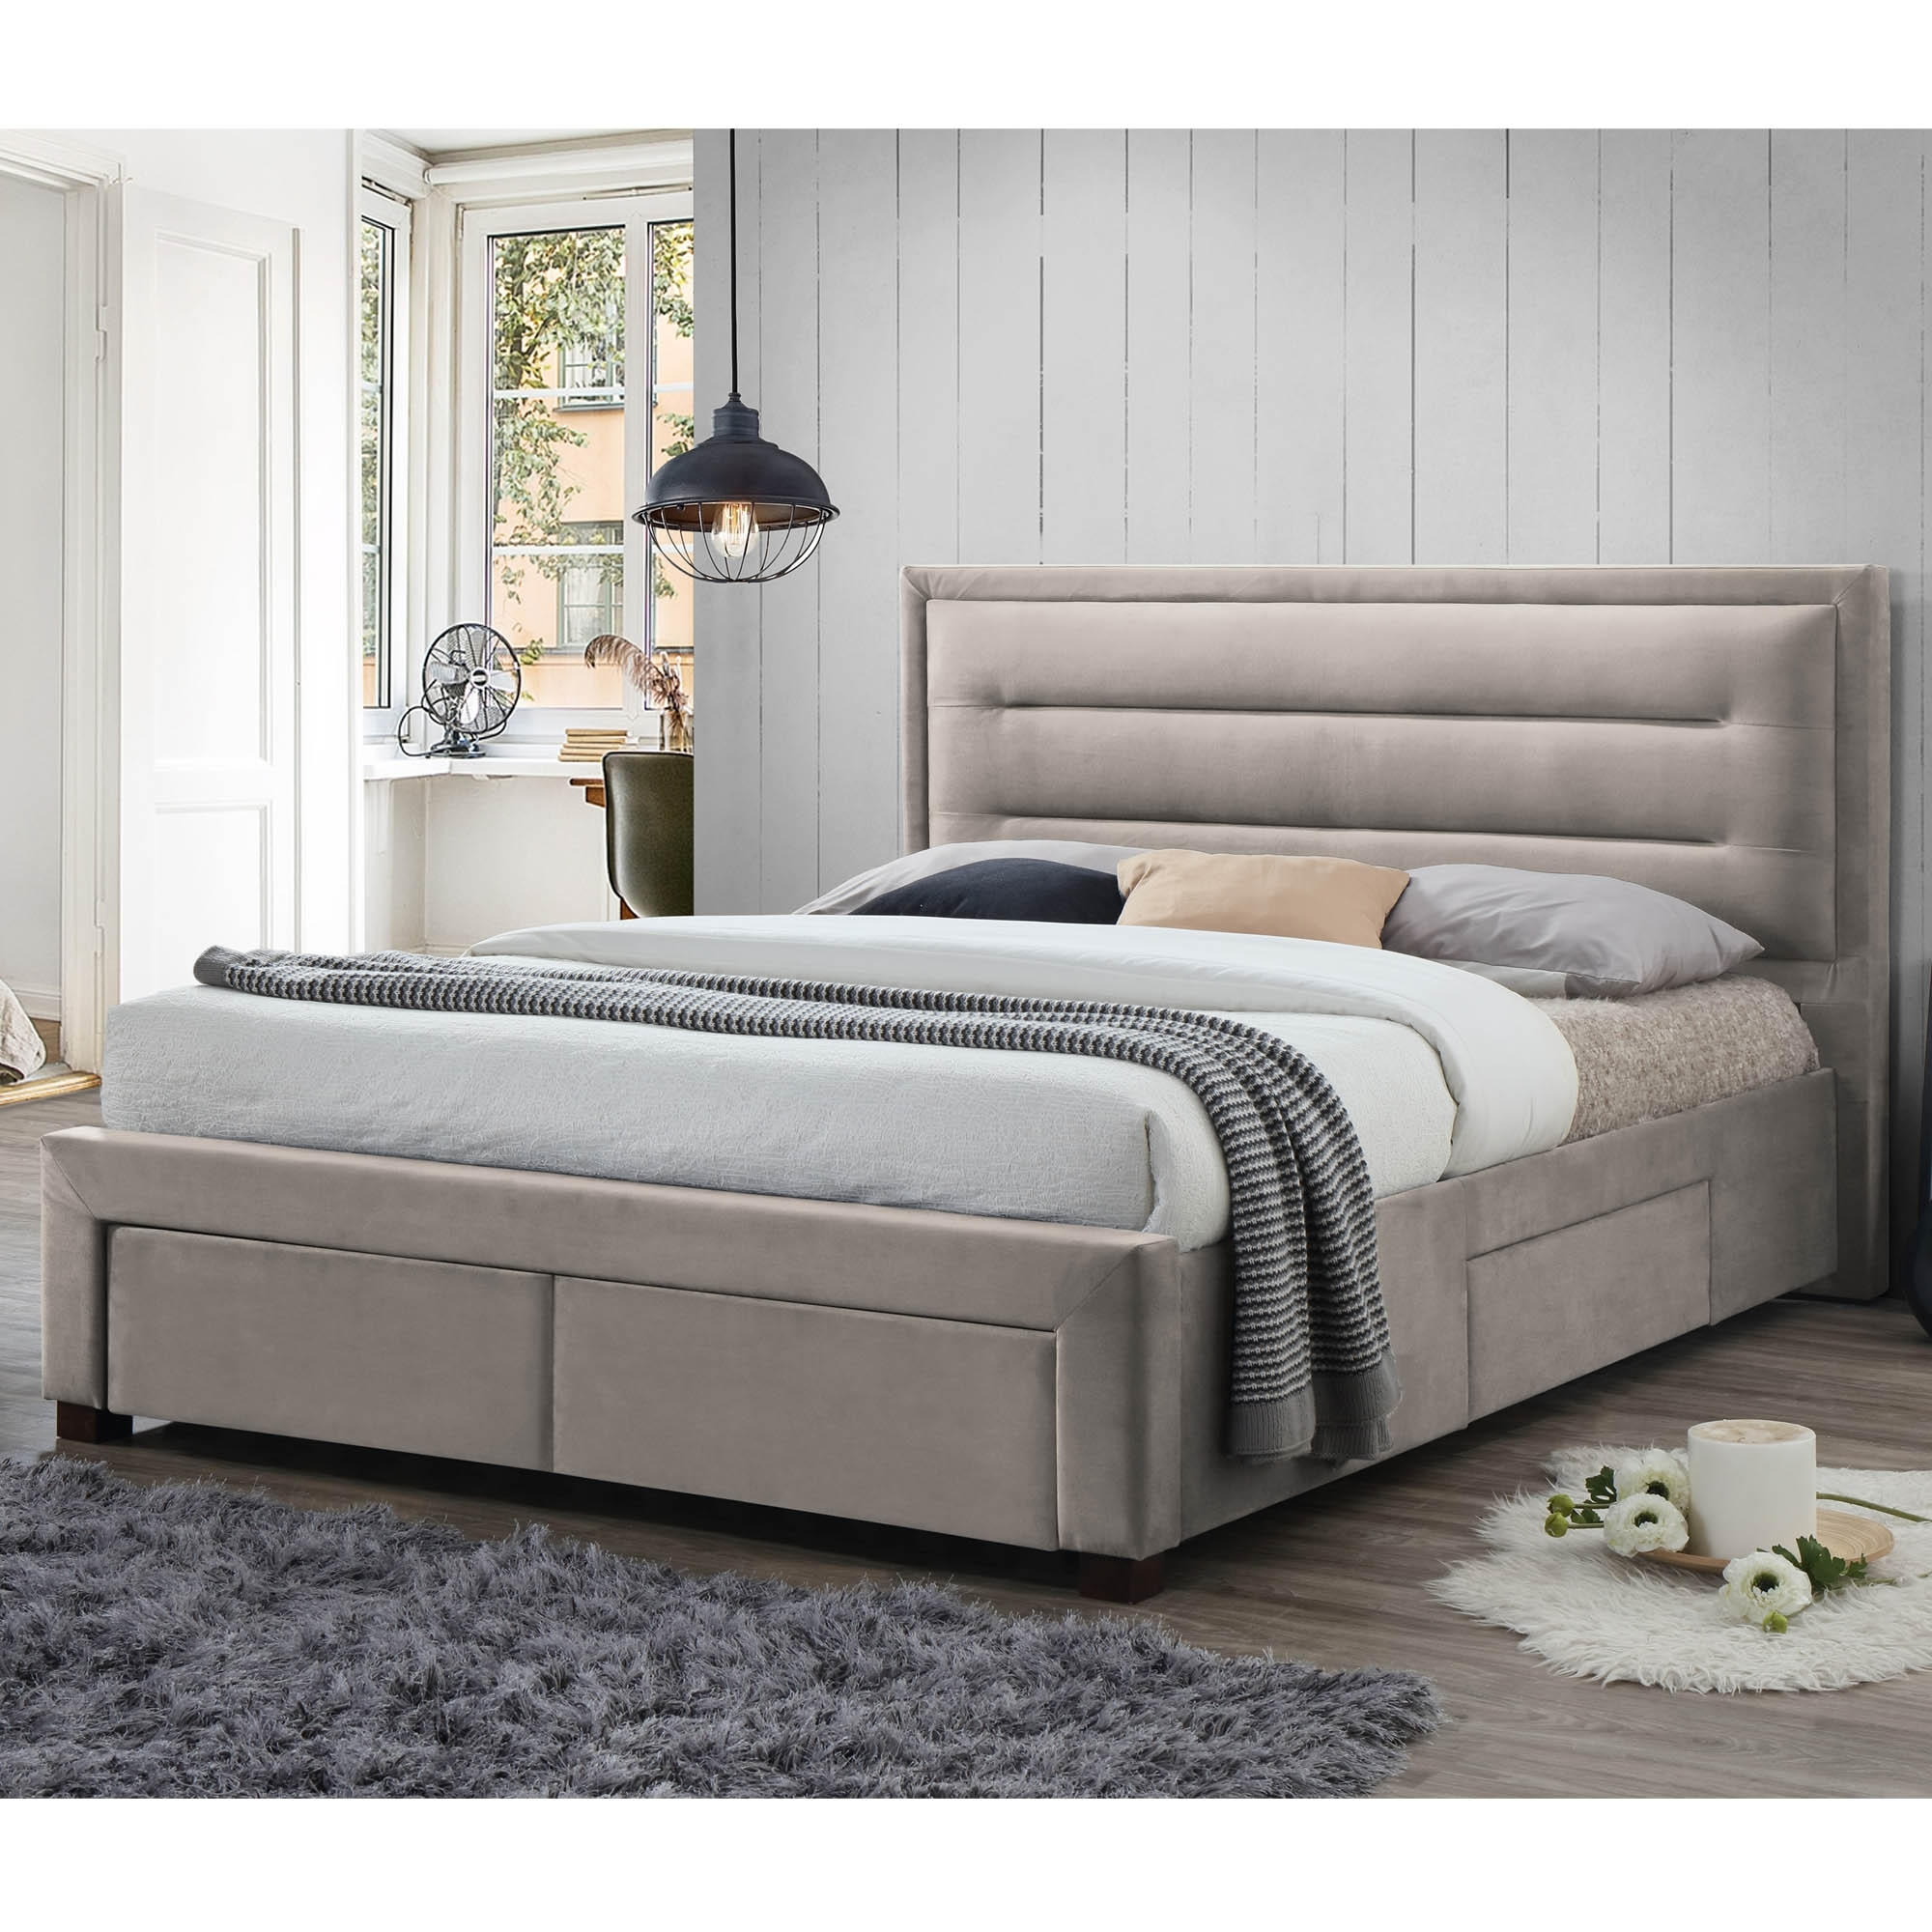 Pippa Champagne Fabric Bed Fabric Homesdirect365